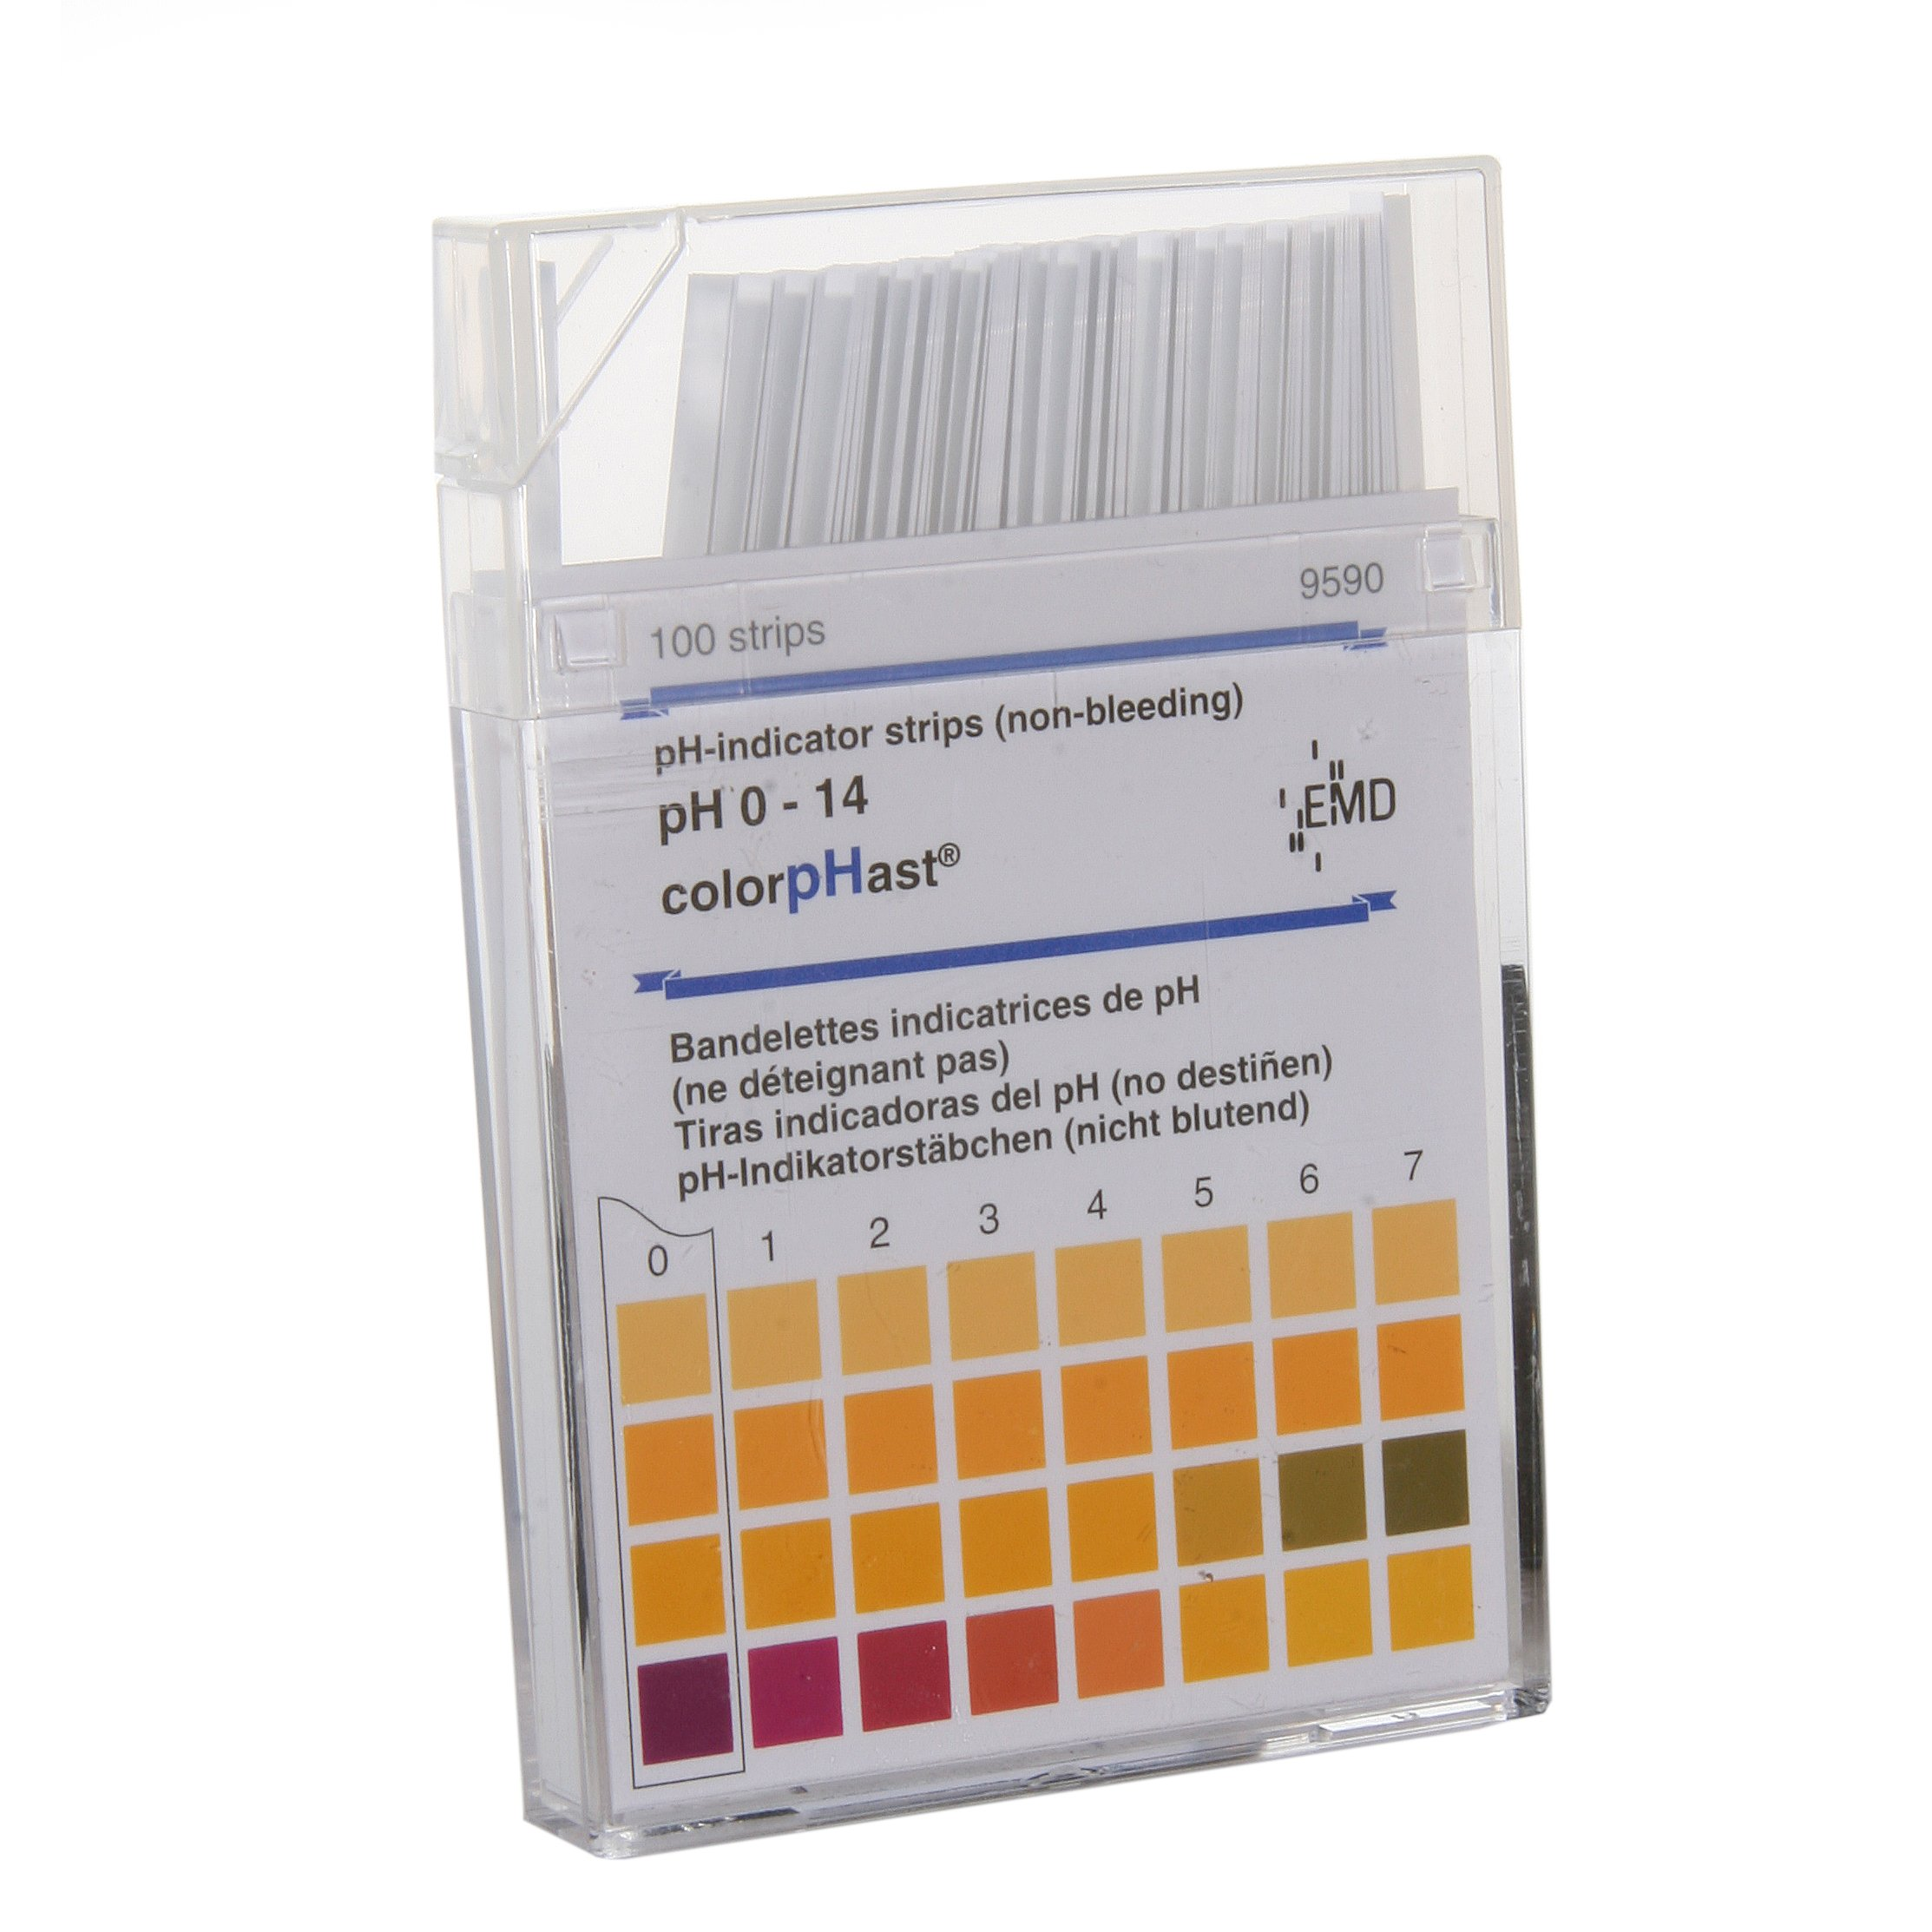 ColorpHast 9590-3 Test Strips, 0-14 pH (Box of 100) by Millipore